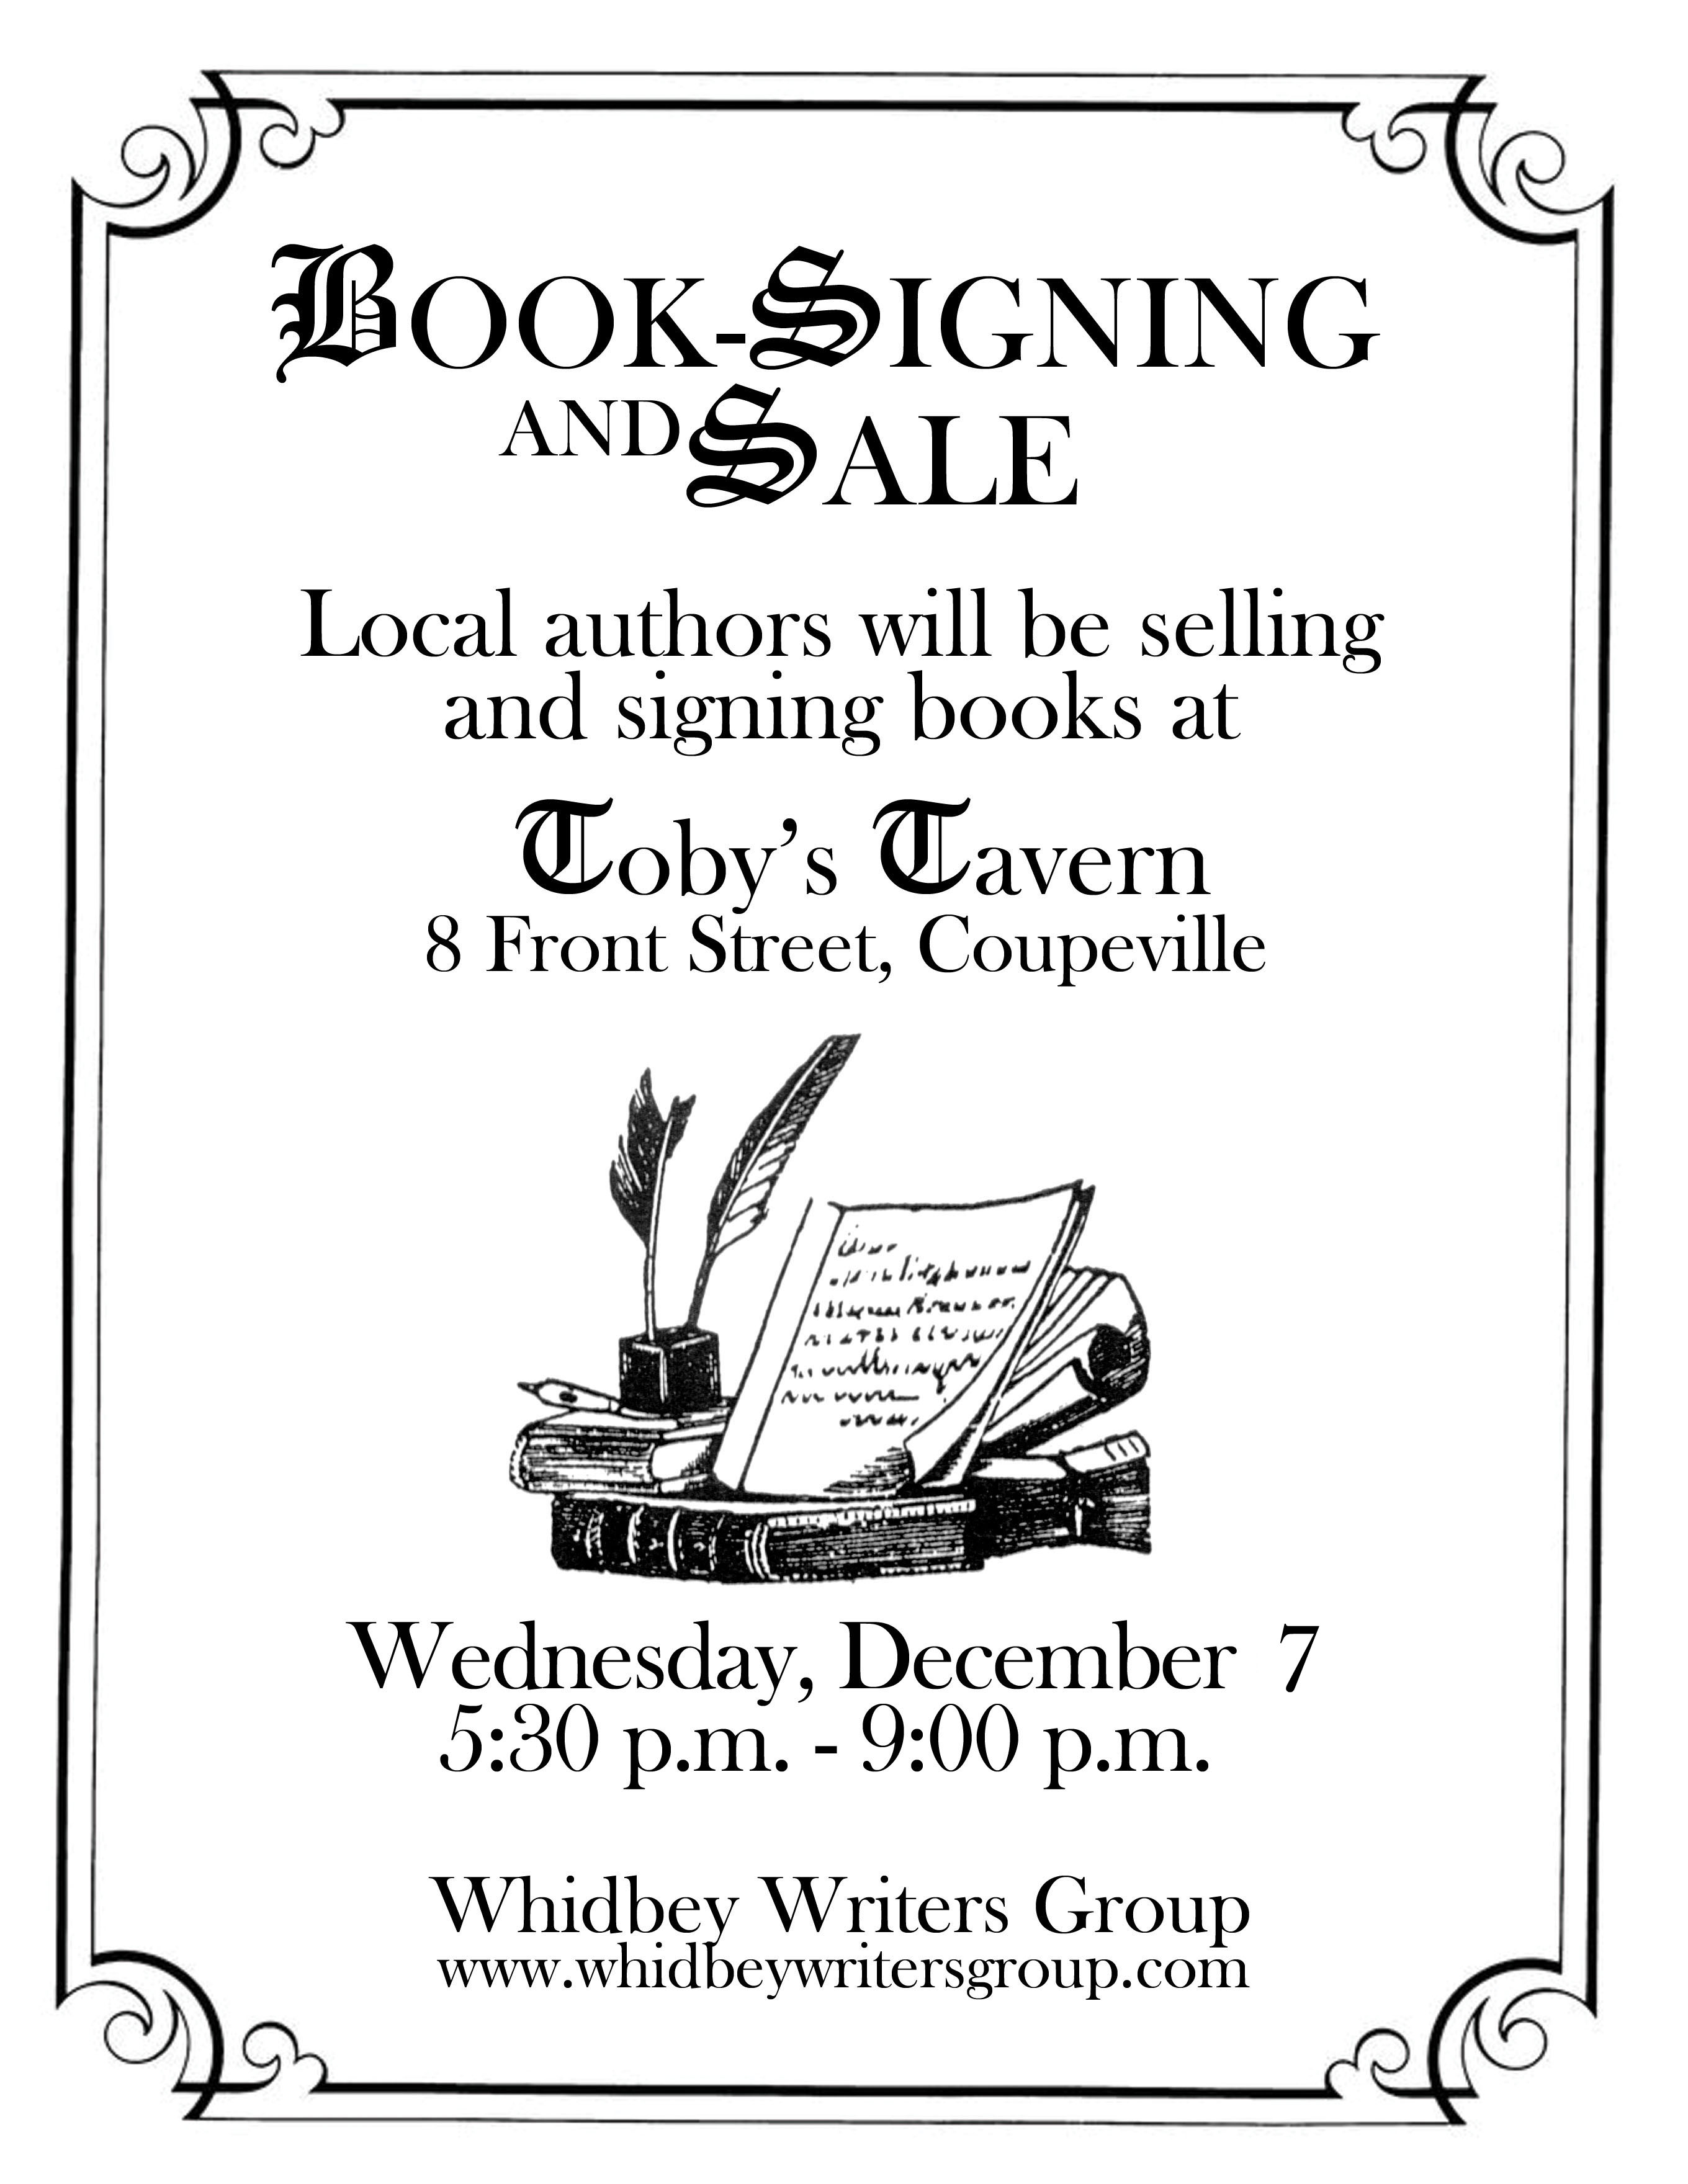 booksigning-poster-2016